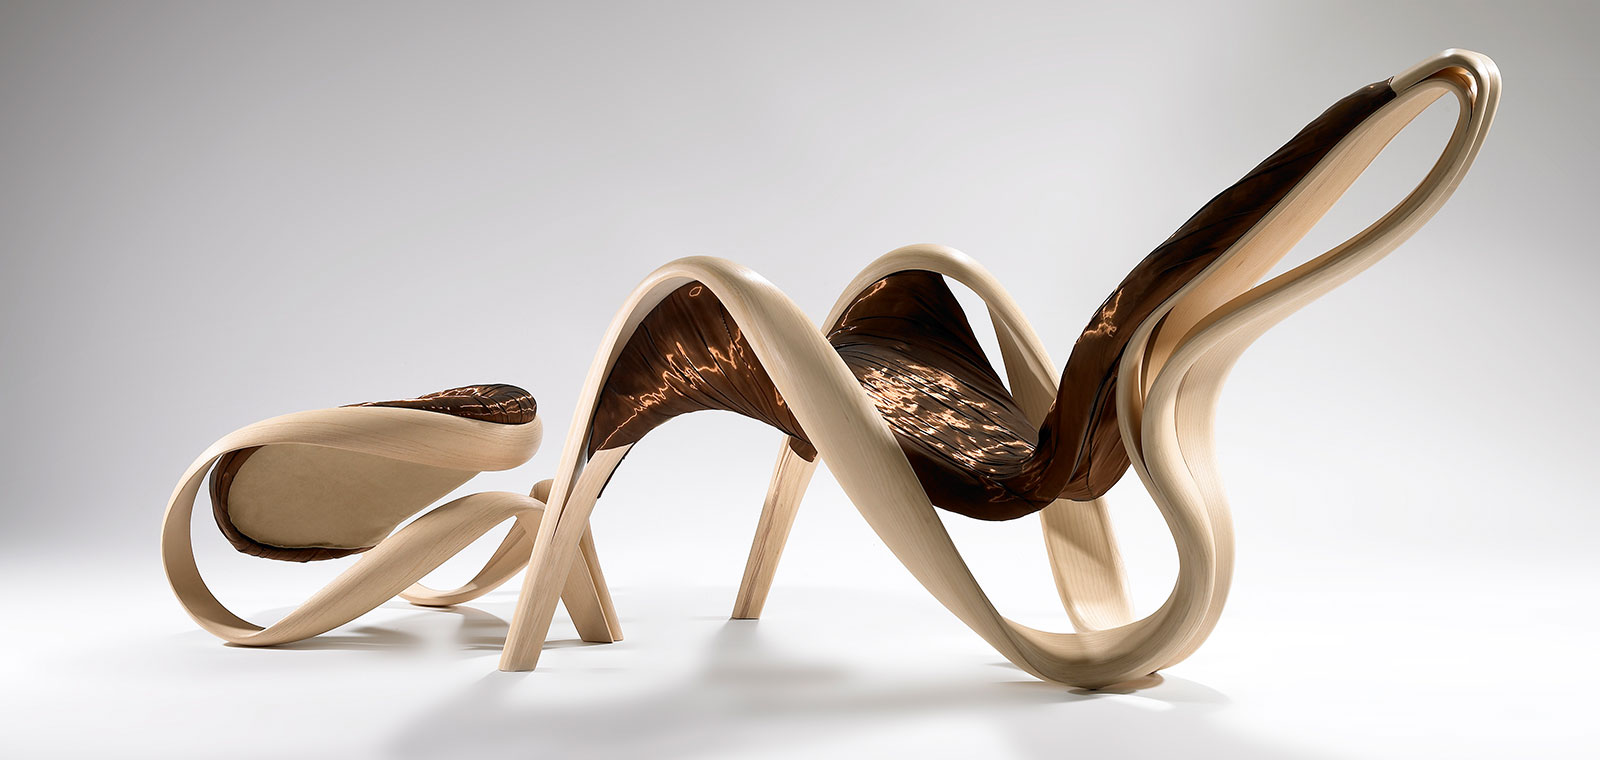 Enignum lounge chair futuristic furniture design by Joseph Walsh Studio